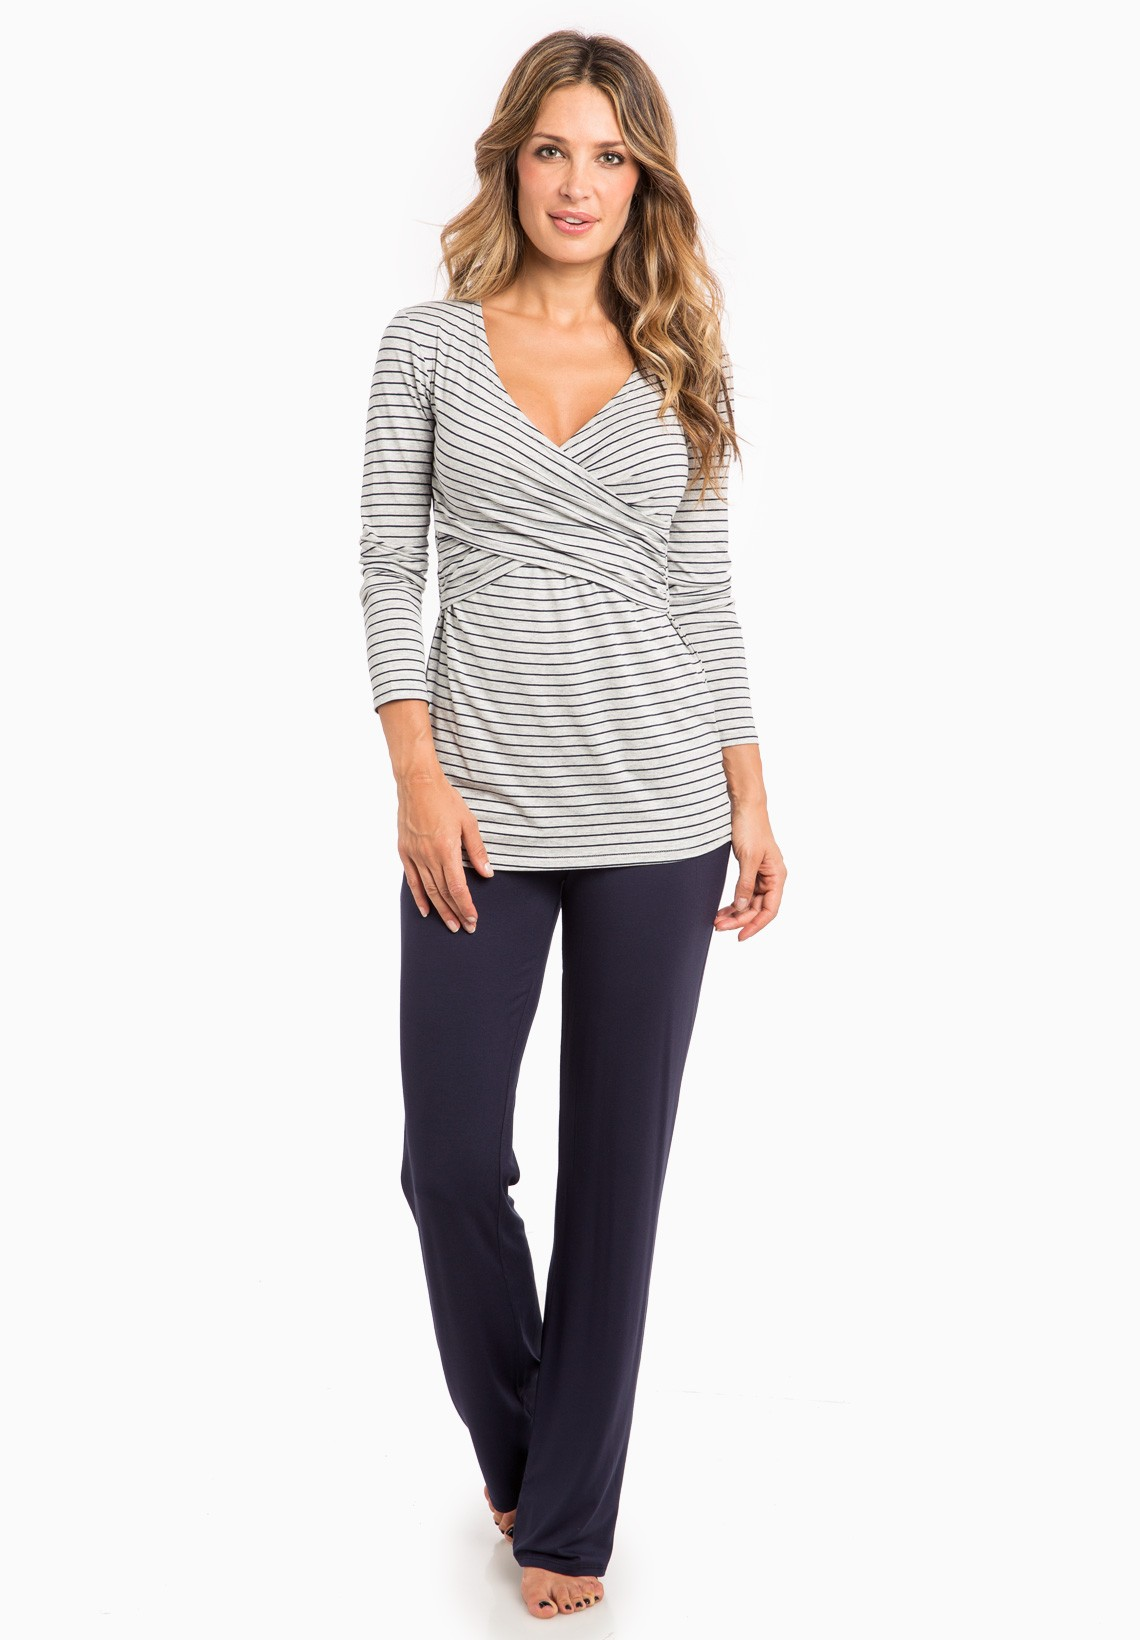 Free shipping on maternity clothes for women at multiformo.tk Shop maternity clothes, jeans, dresses & more from the best brands. Totally free shipping & returns. Skip navigation. Give the card that gives! We donate 1% of all Gift Card sales to local nonprofits. Shop Gift Cards. Designer.